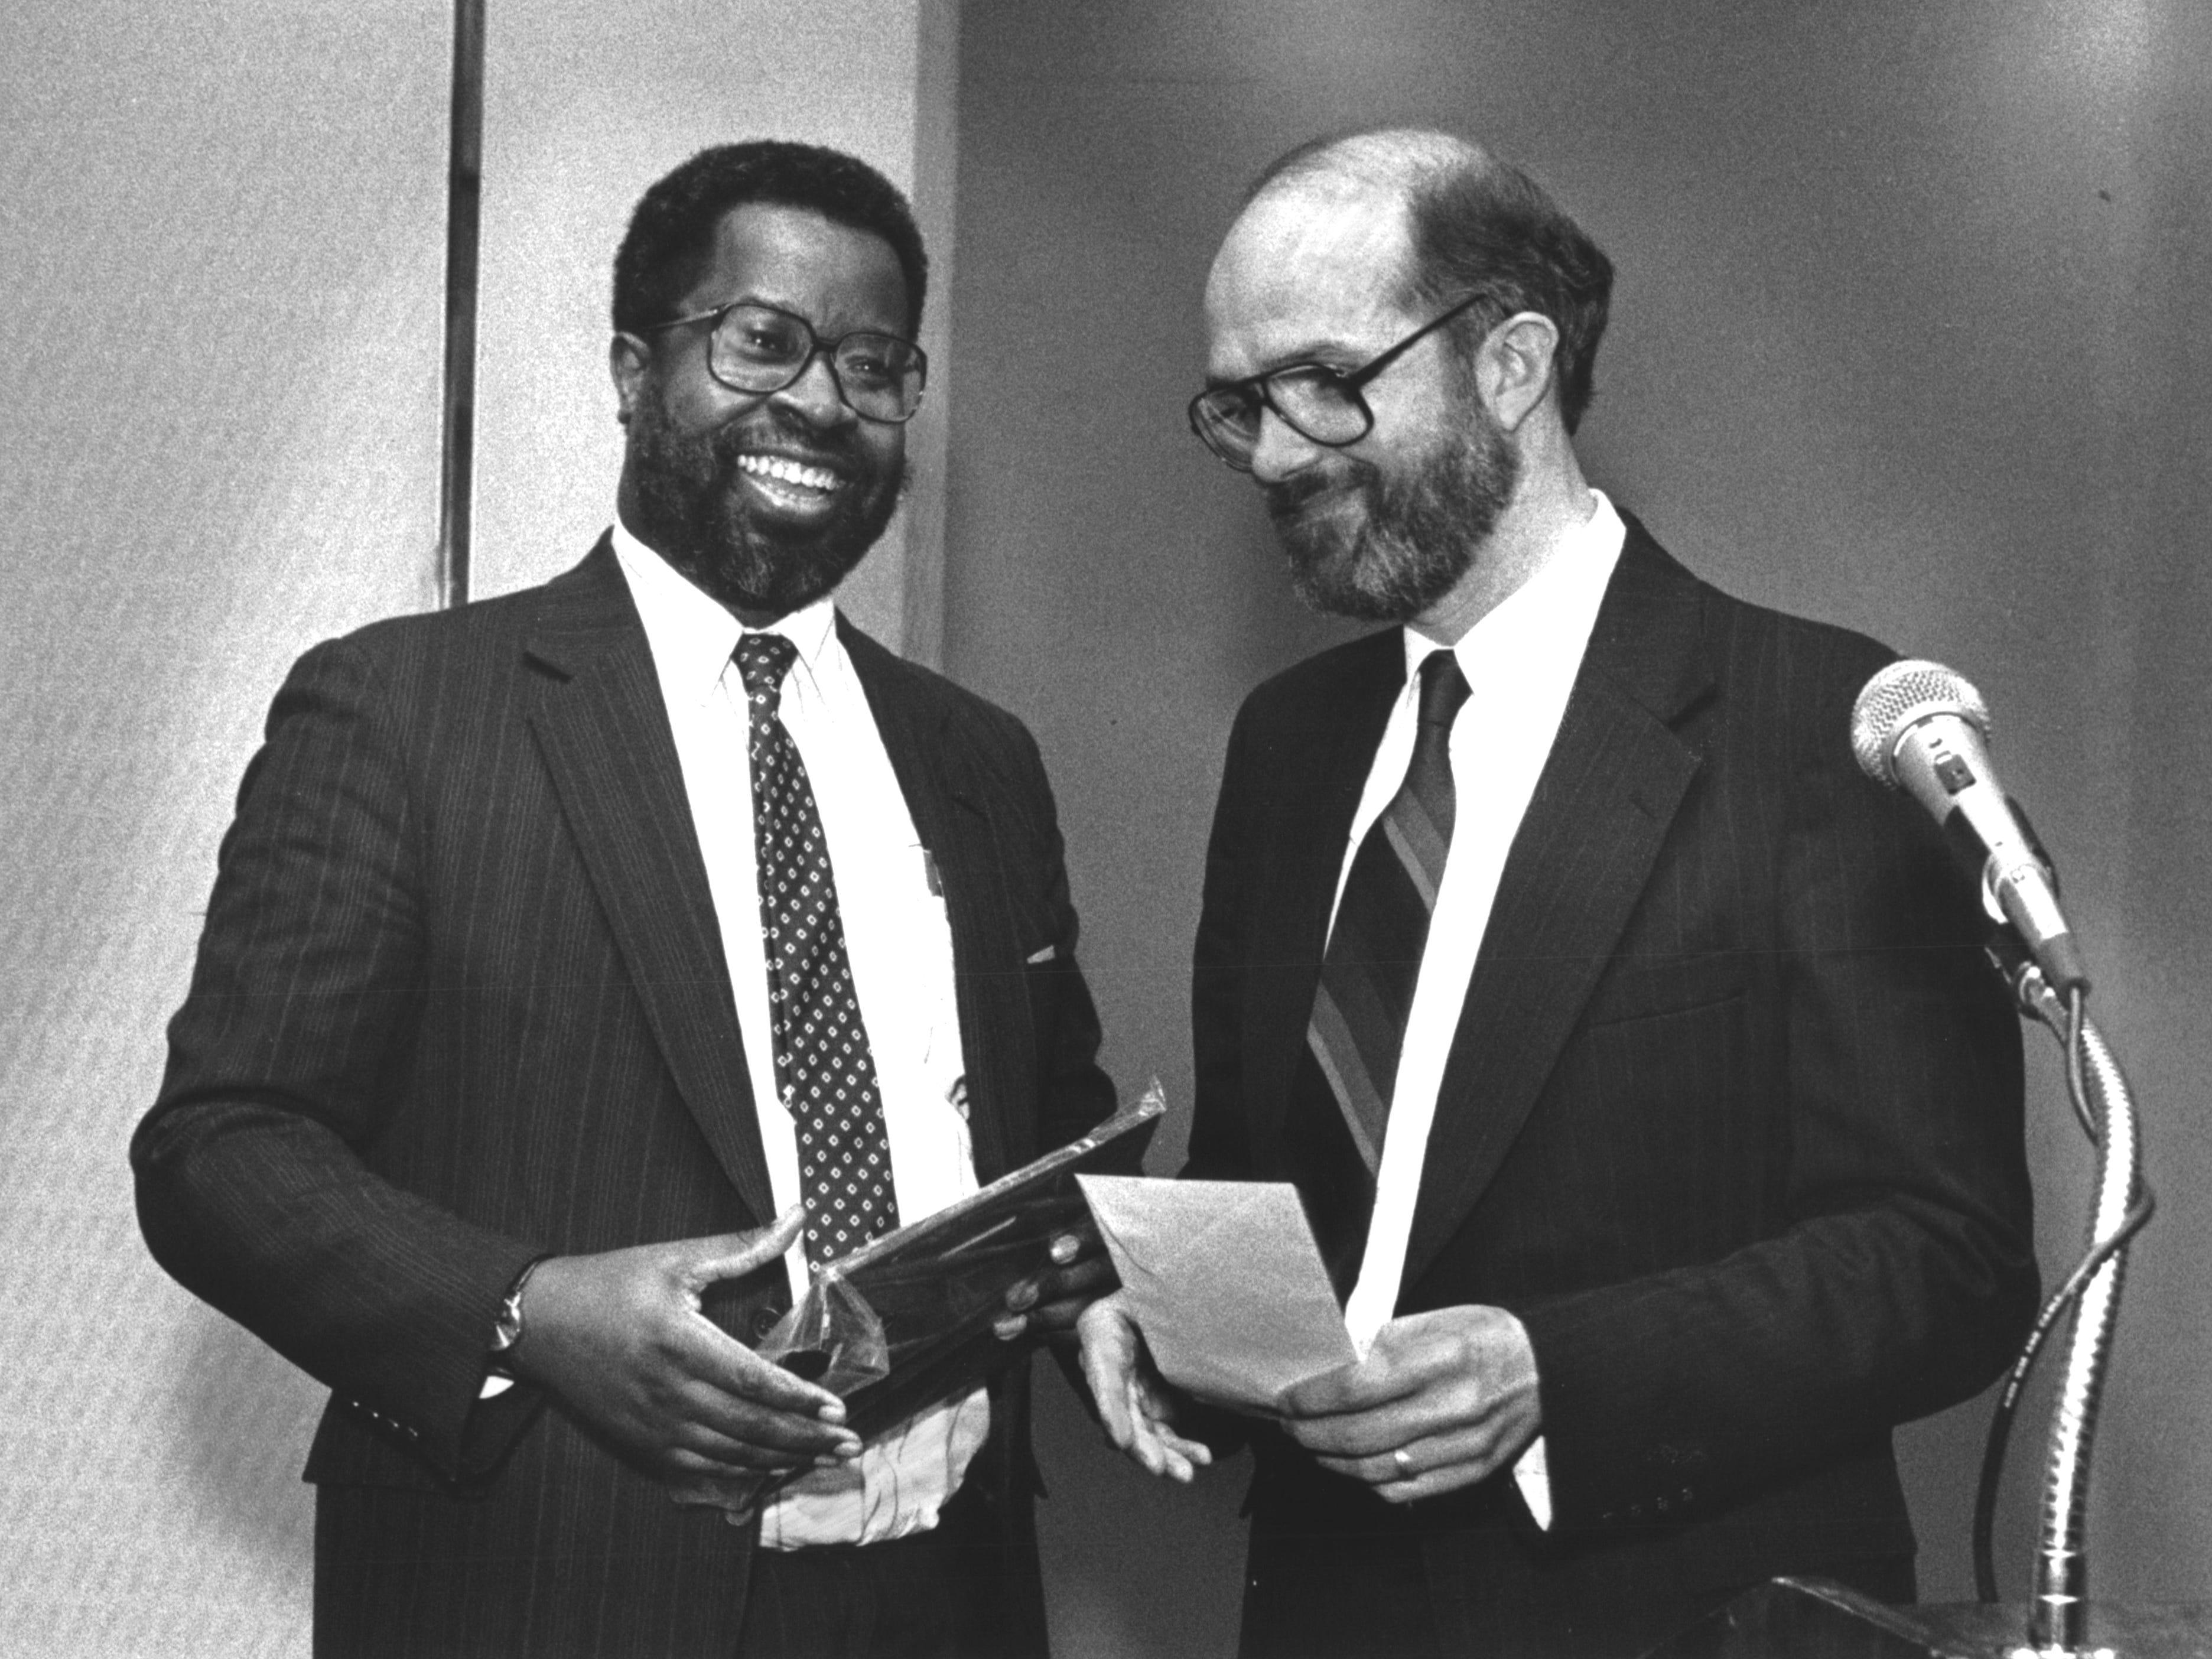 1991: Milwaukee Journal reporter Tom Heinen presents an award to Milwaukee Journal editorial writer Gregory Stanford.